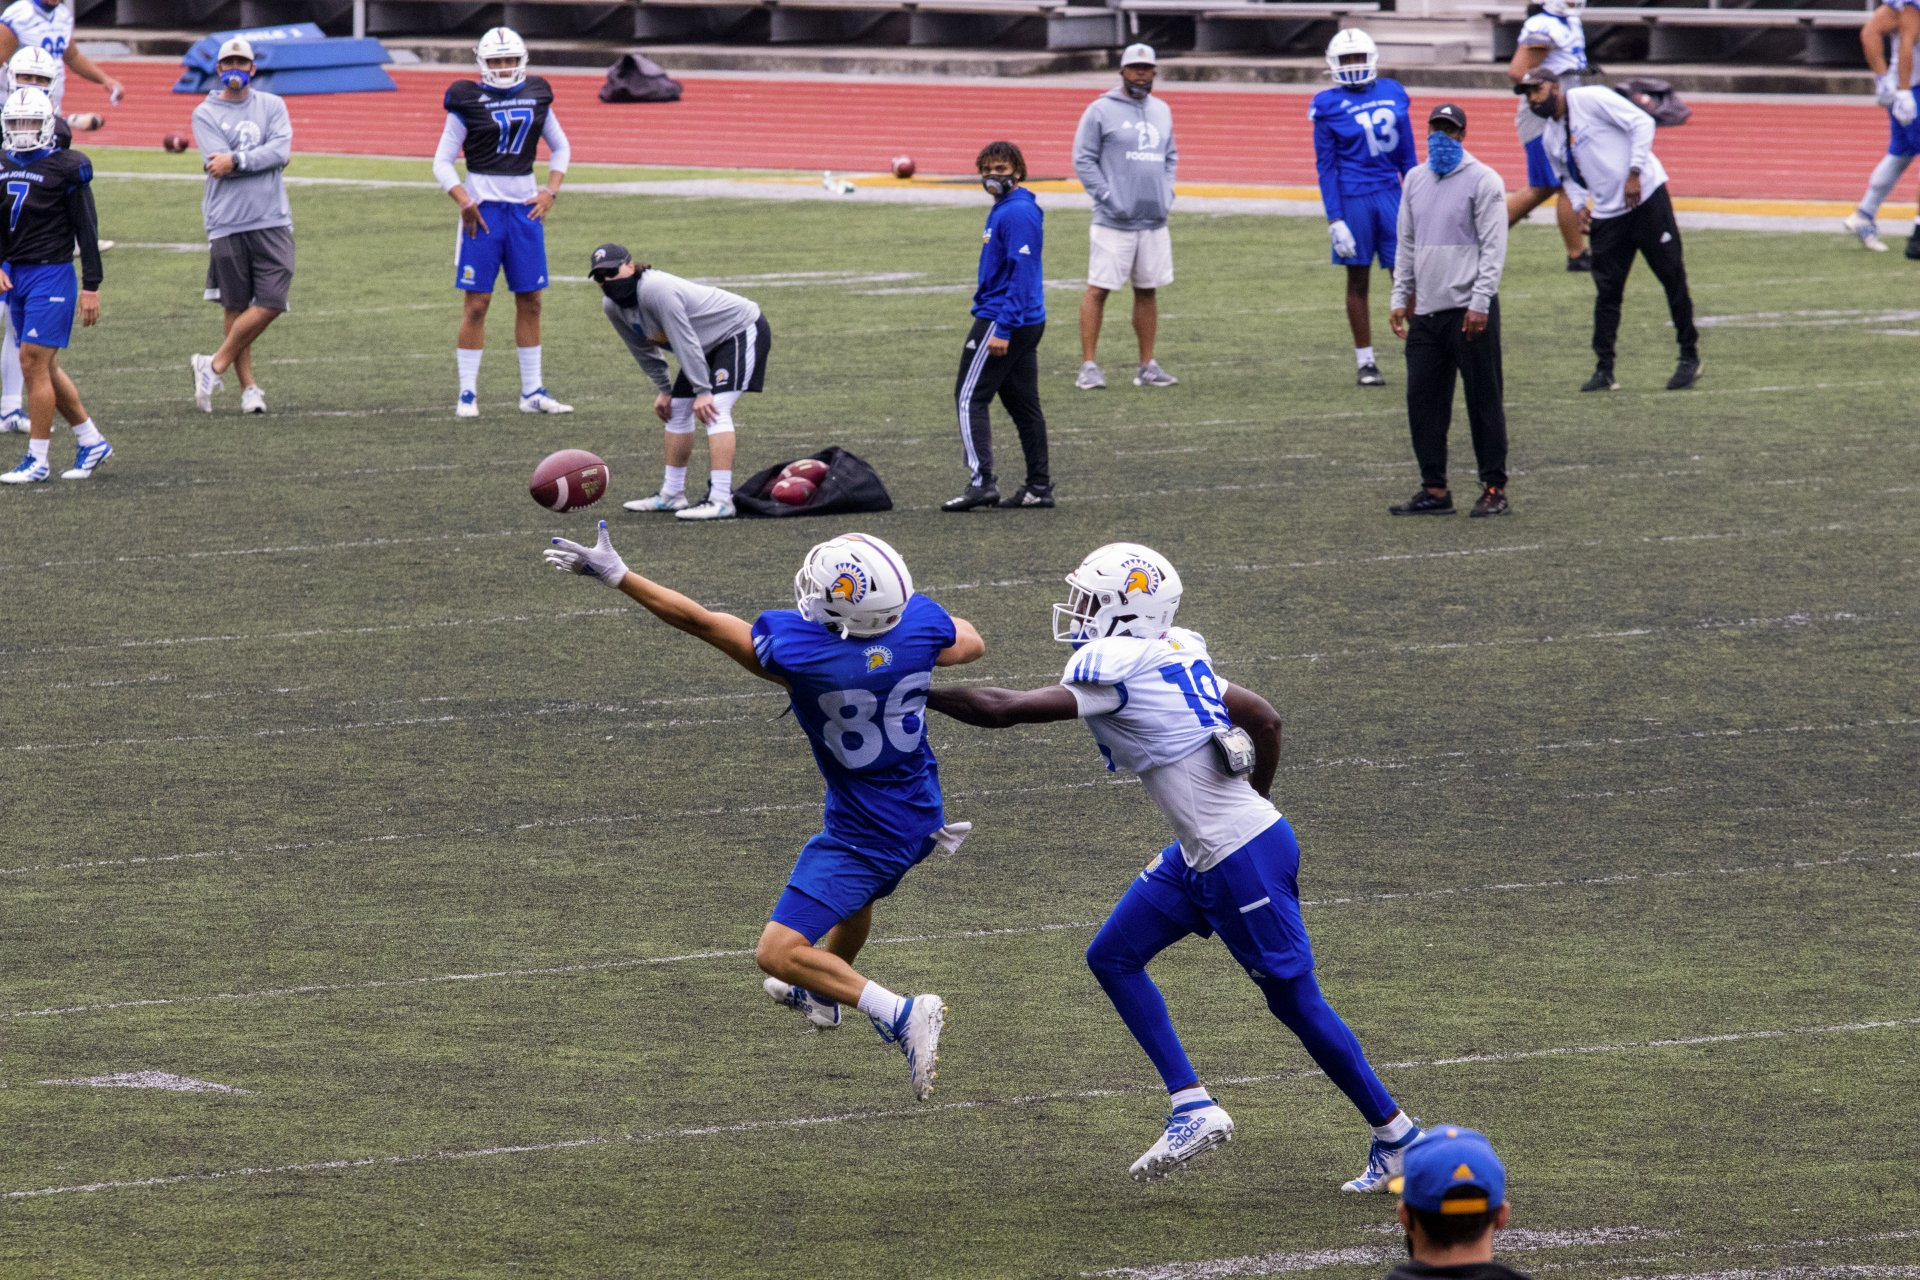 The San Jose State football team practices at the Redwood Bowl on the HSU campus before deaprting for SJSU on October 14, 2020 after COVID-19 restrictions were loosened in Santa Clara County. | Photo by Thomas Lal